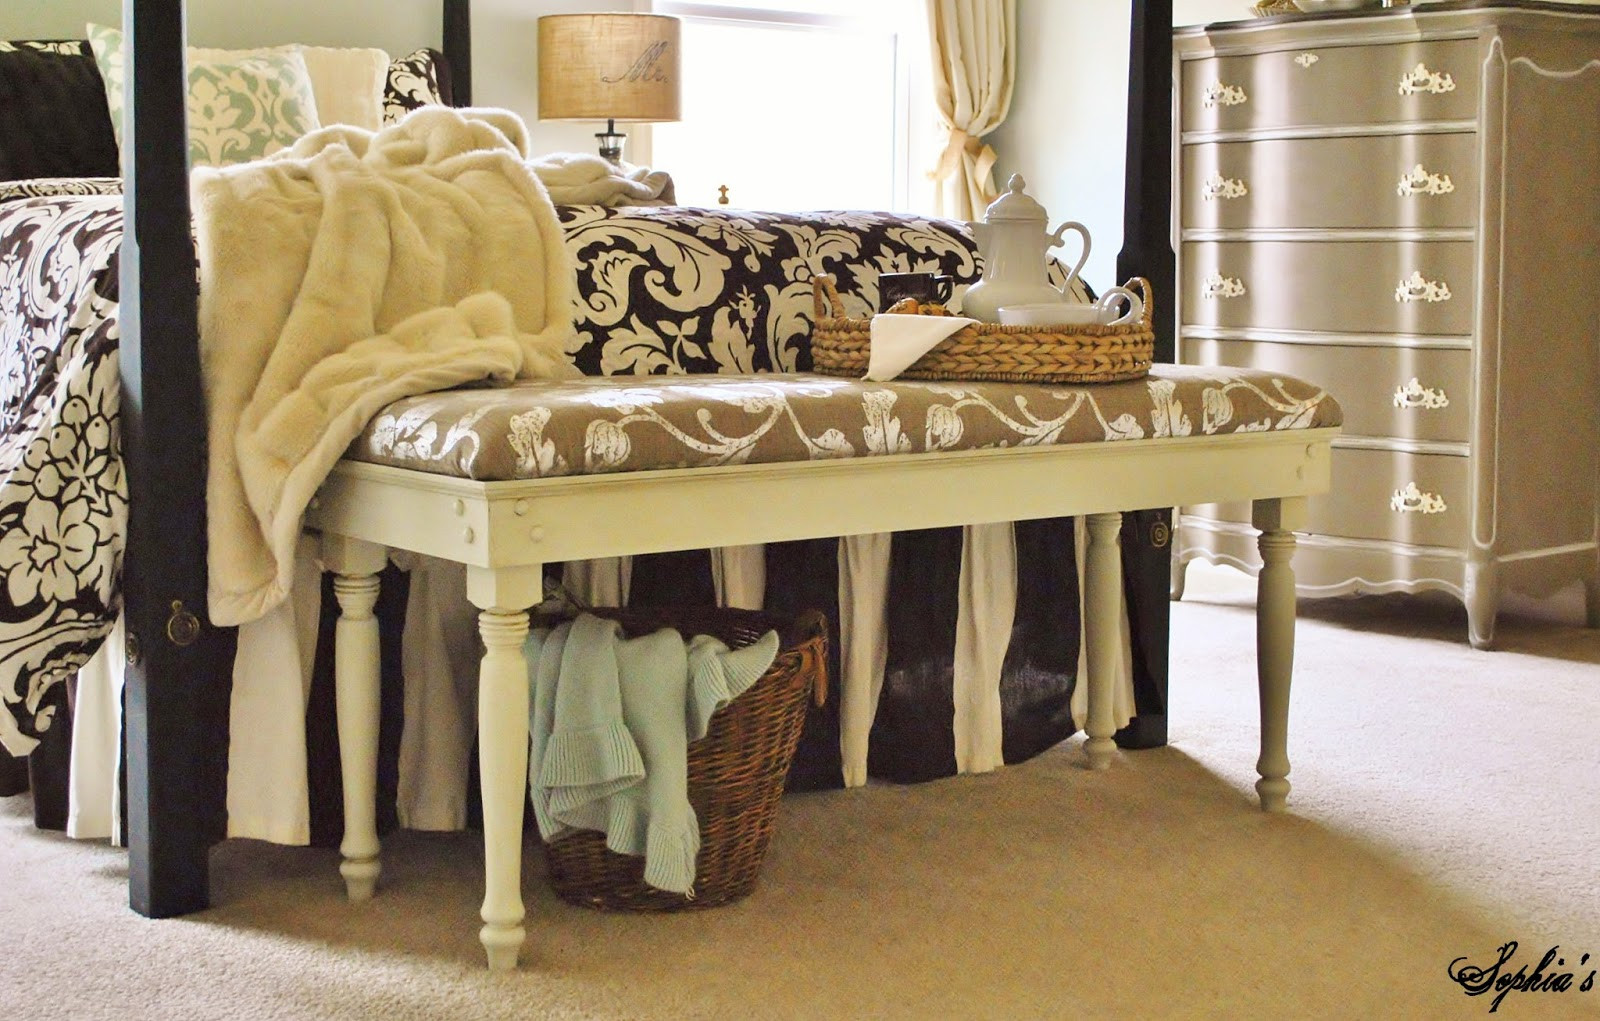 Best ideas about DIY Bed Bench . Save or Pin Sophia s DIY Bench Tutorial Now.